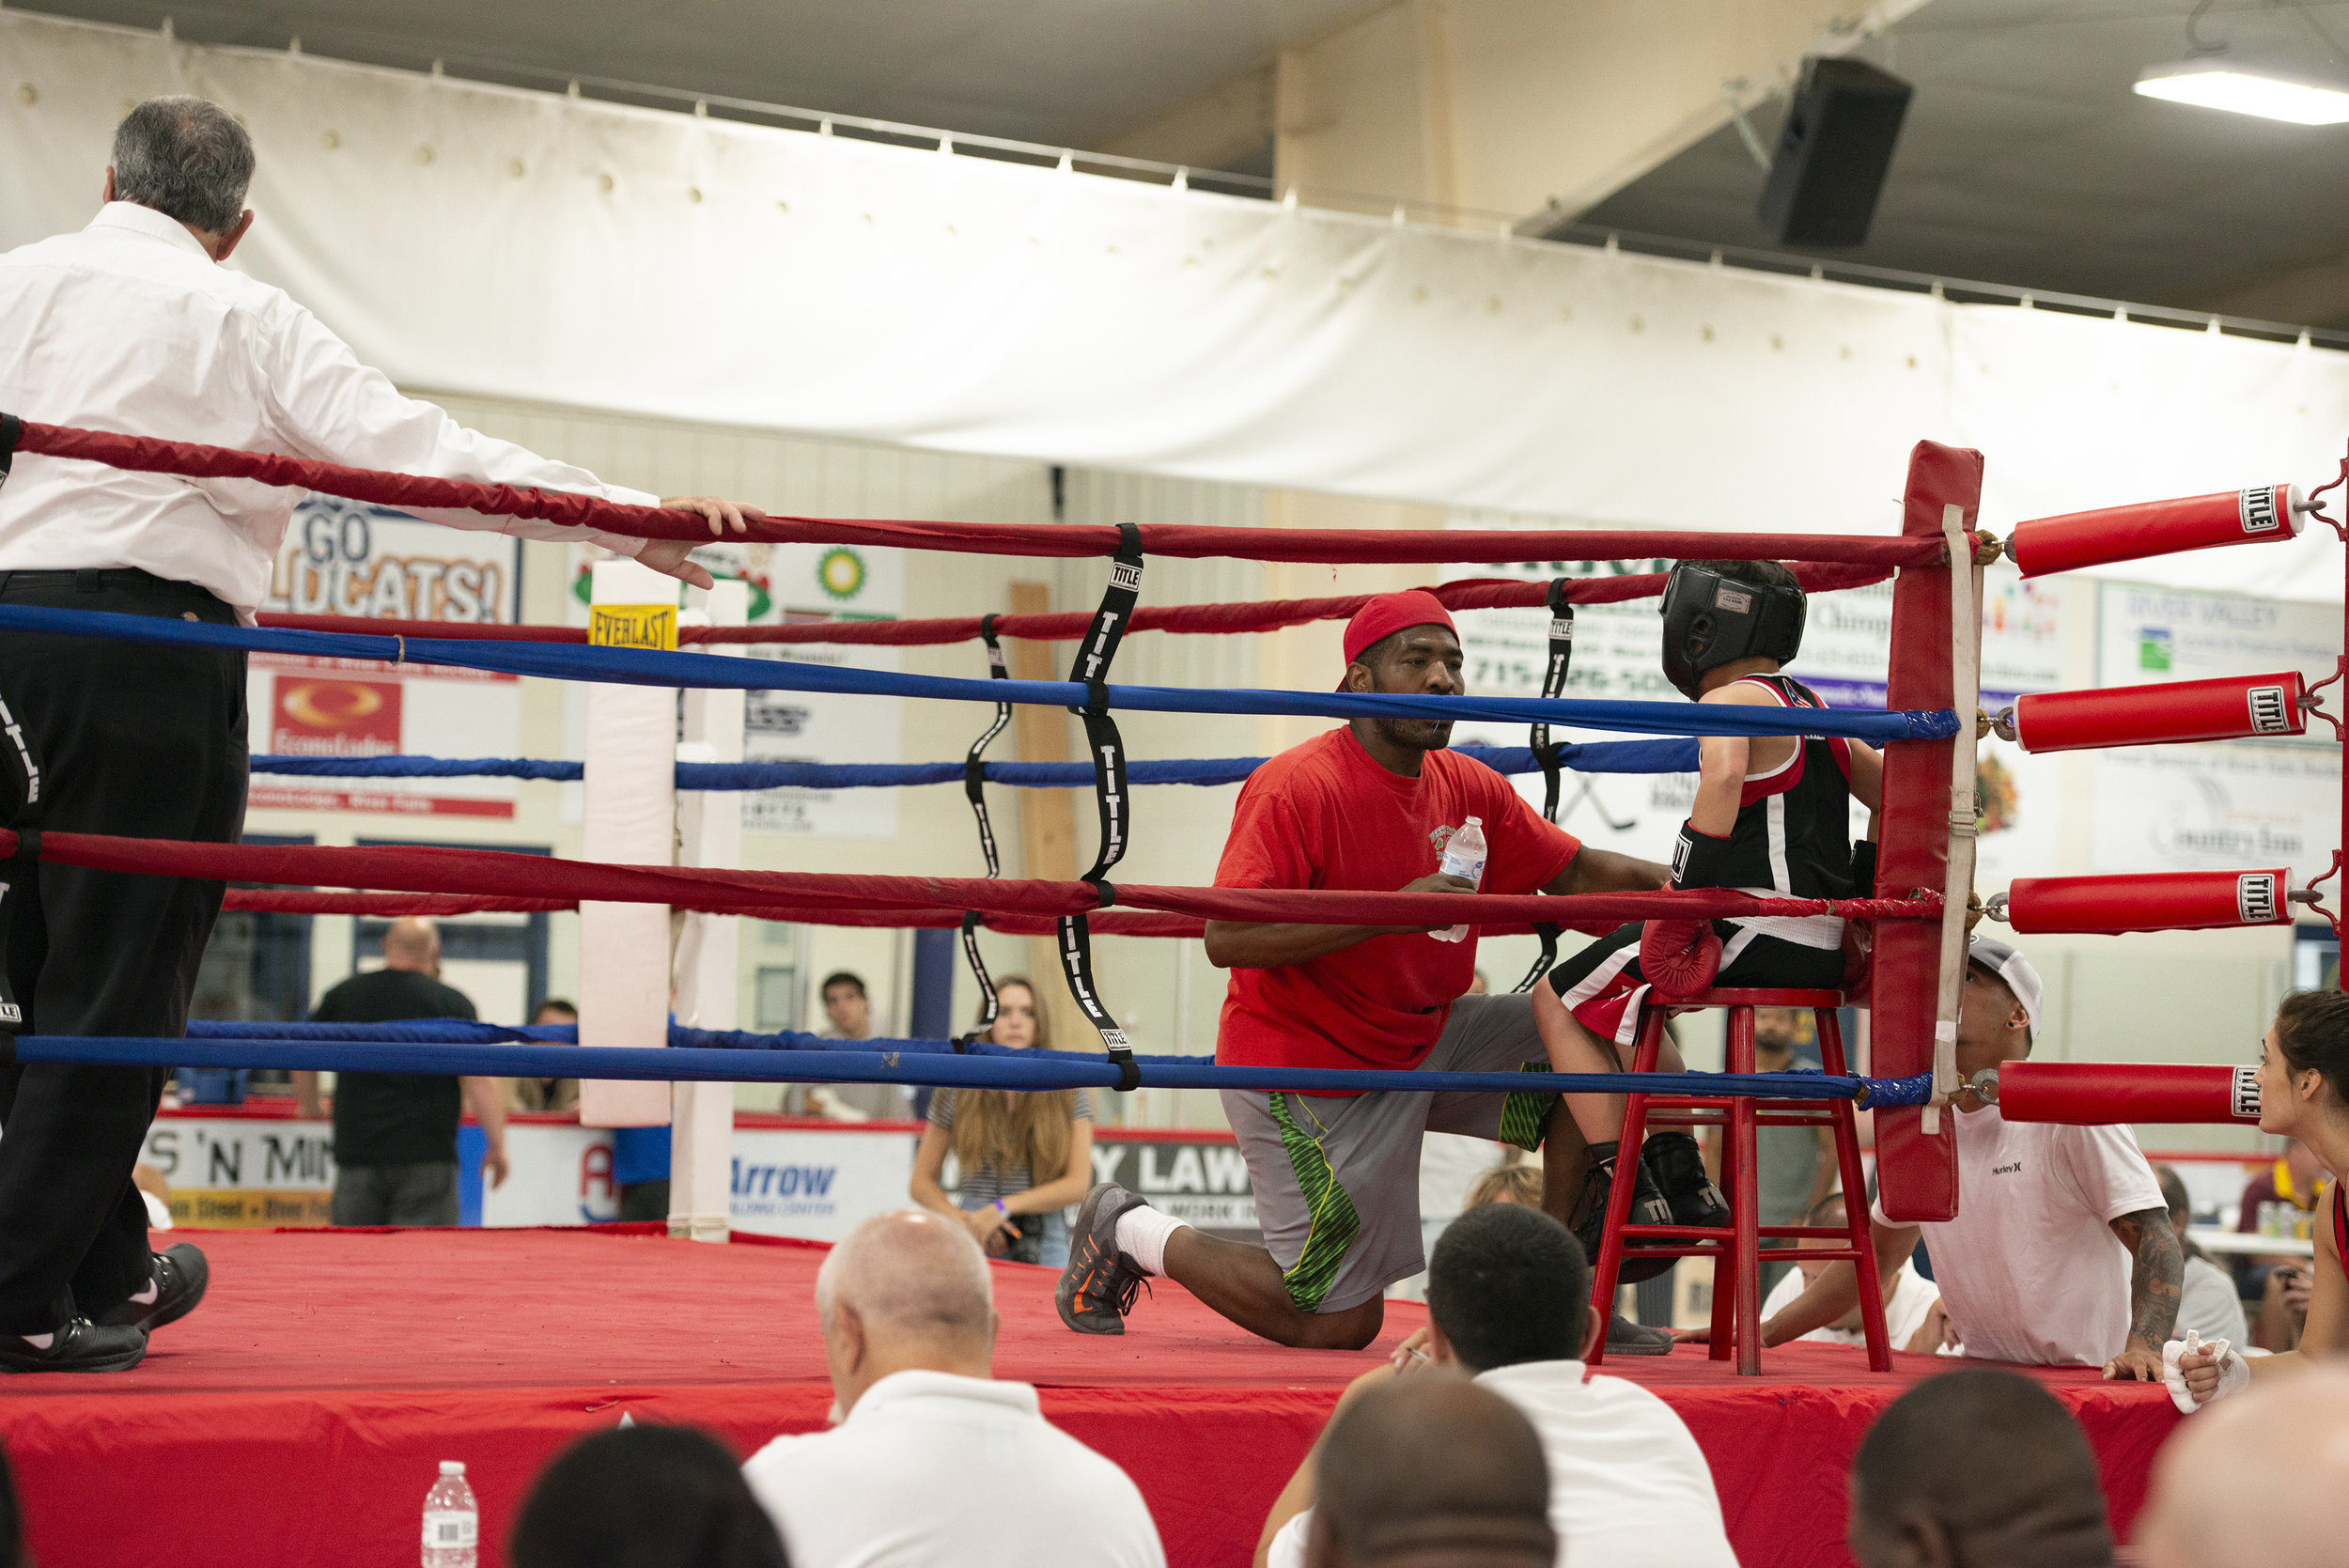 Boxing_Show4_Reverie_photography_Peek-a-Boo_Boxing_Gym_River Falls.jpg